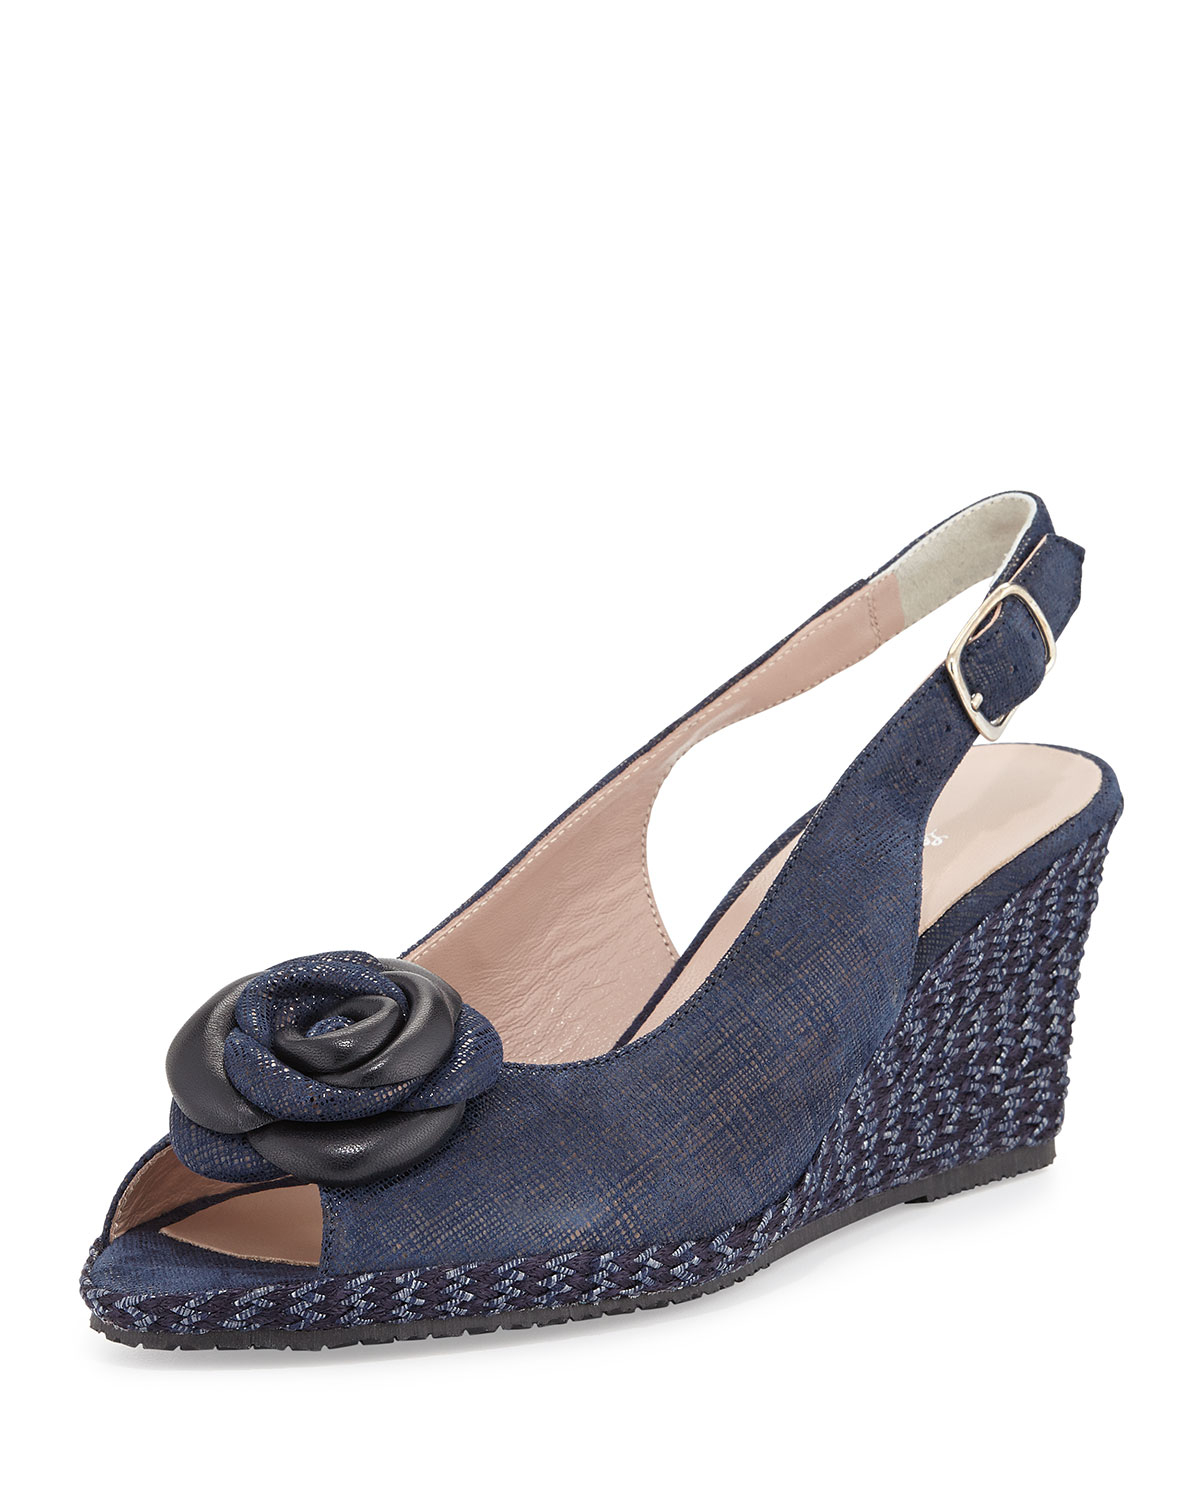 Navy Leather Slingback Shoes Heel